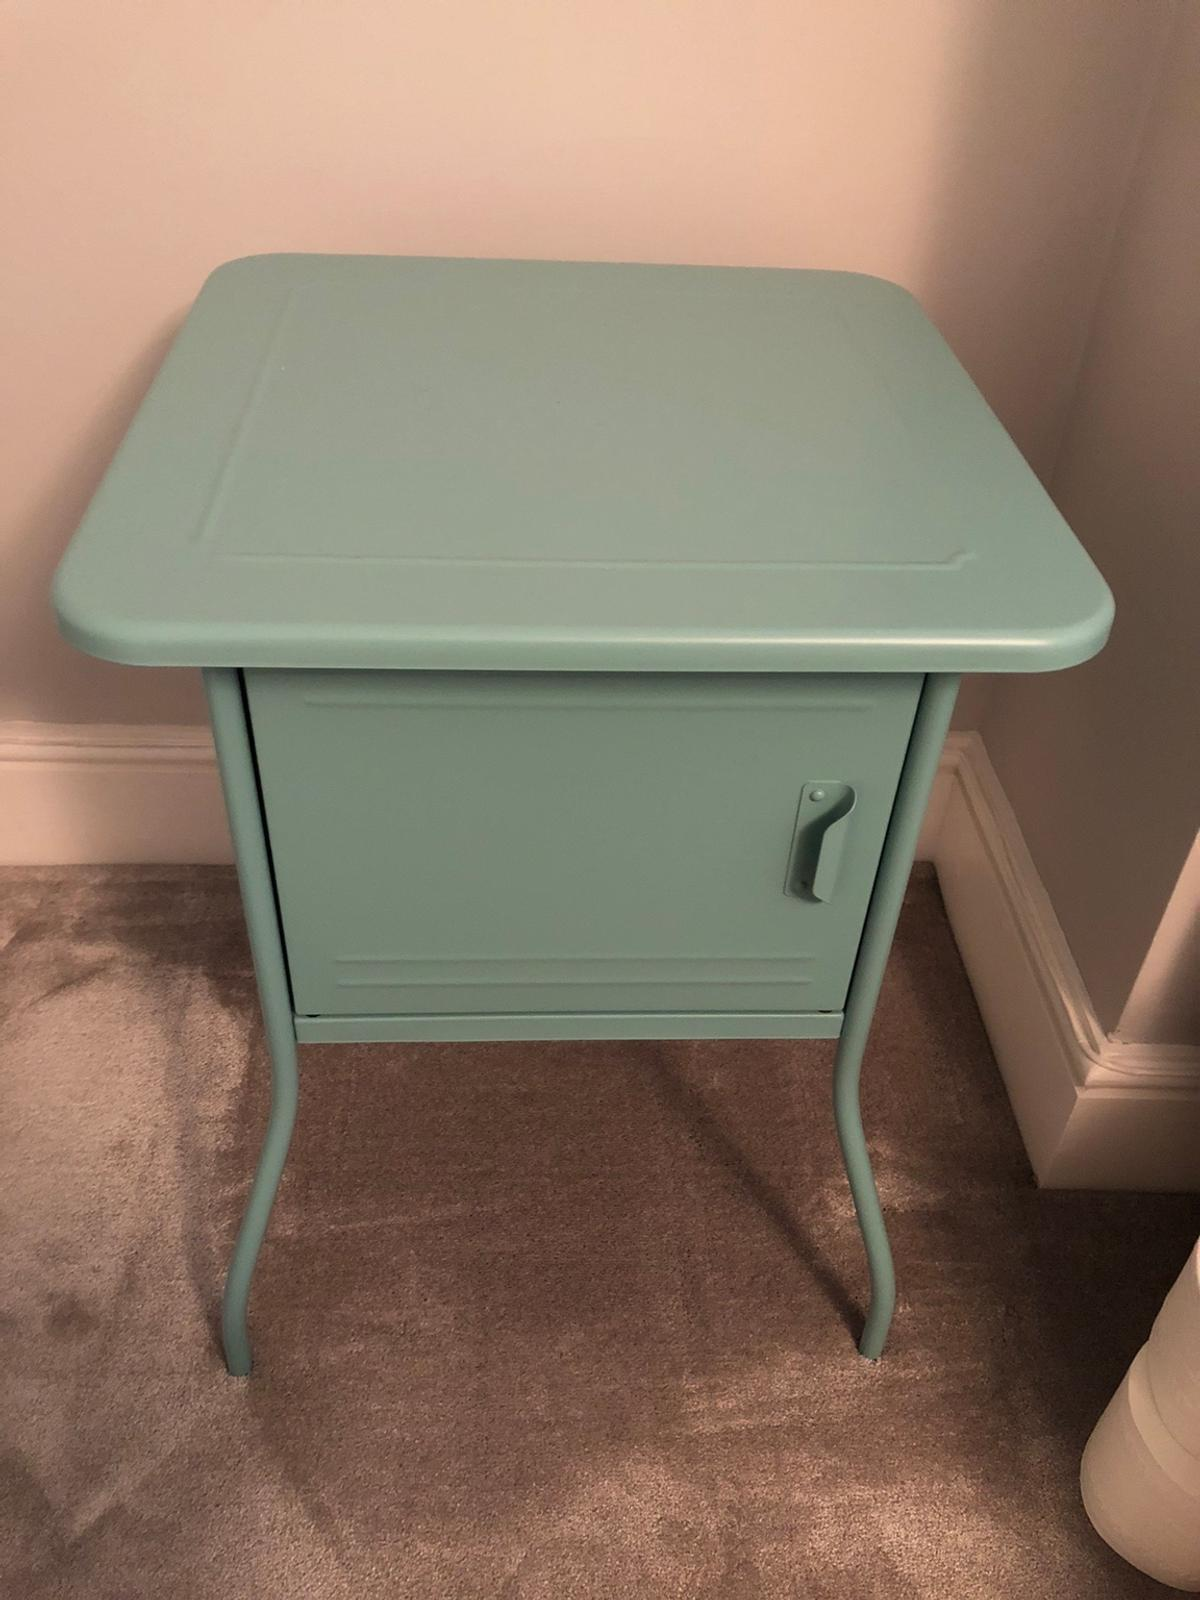 Ikea Bedside Tables The Office